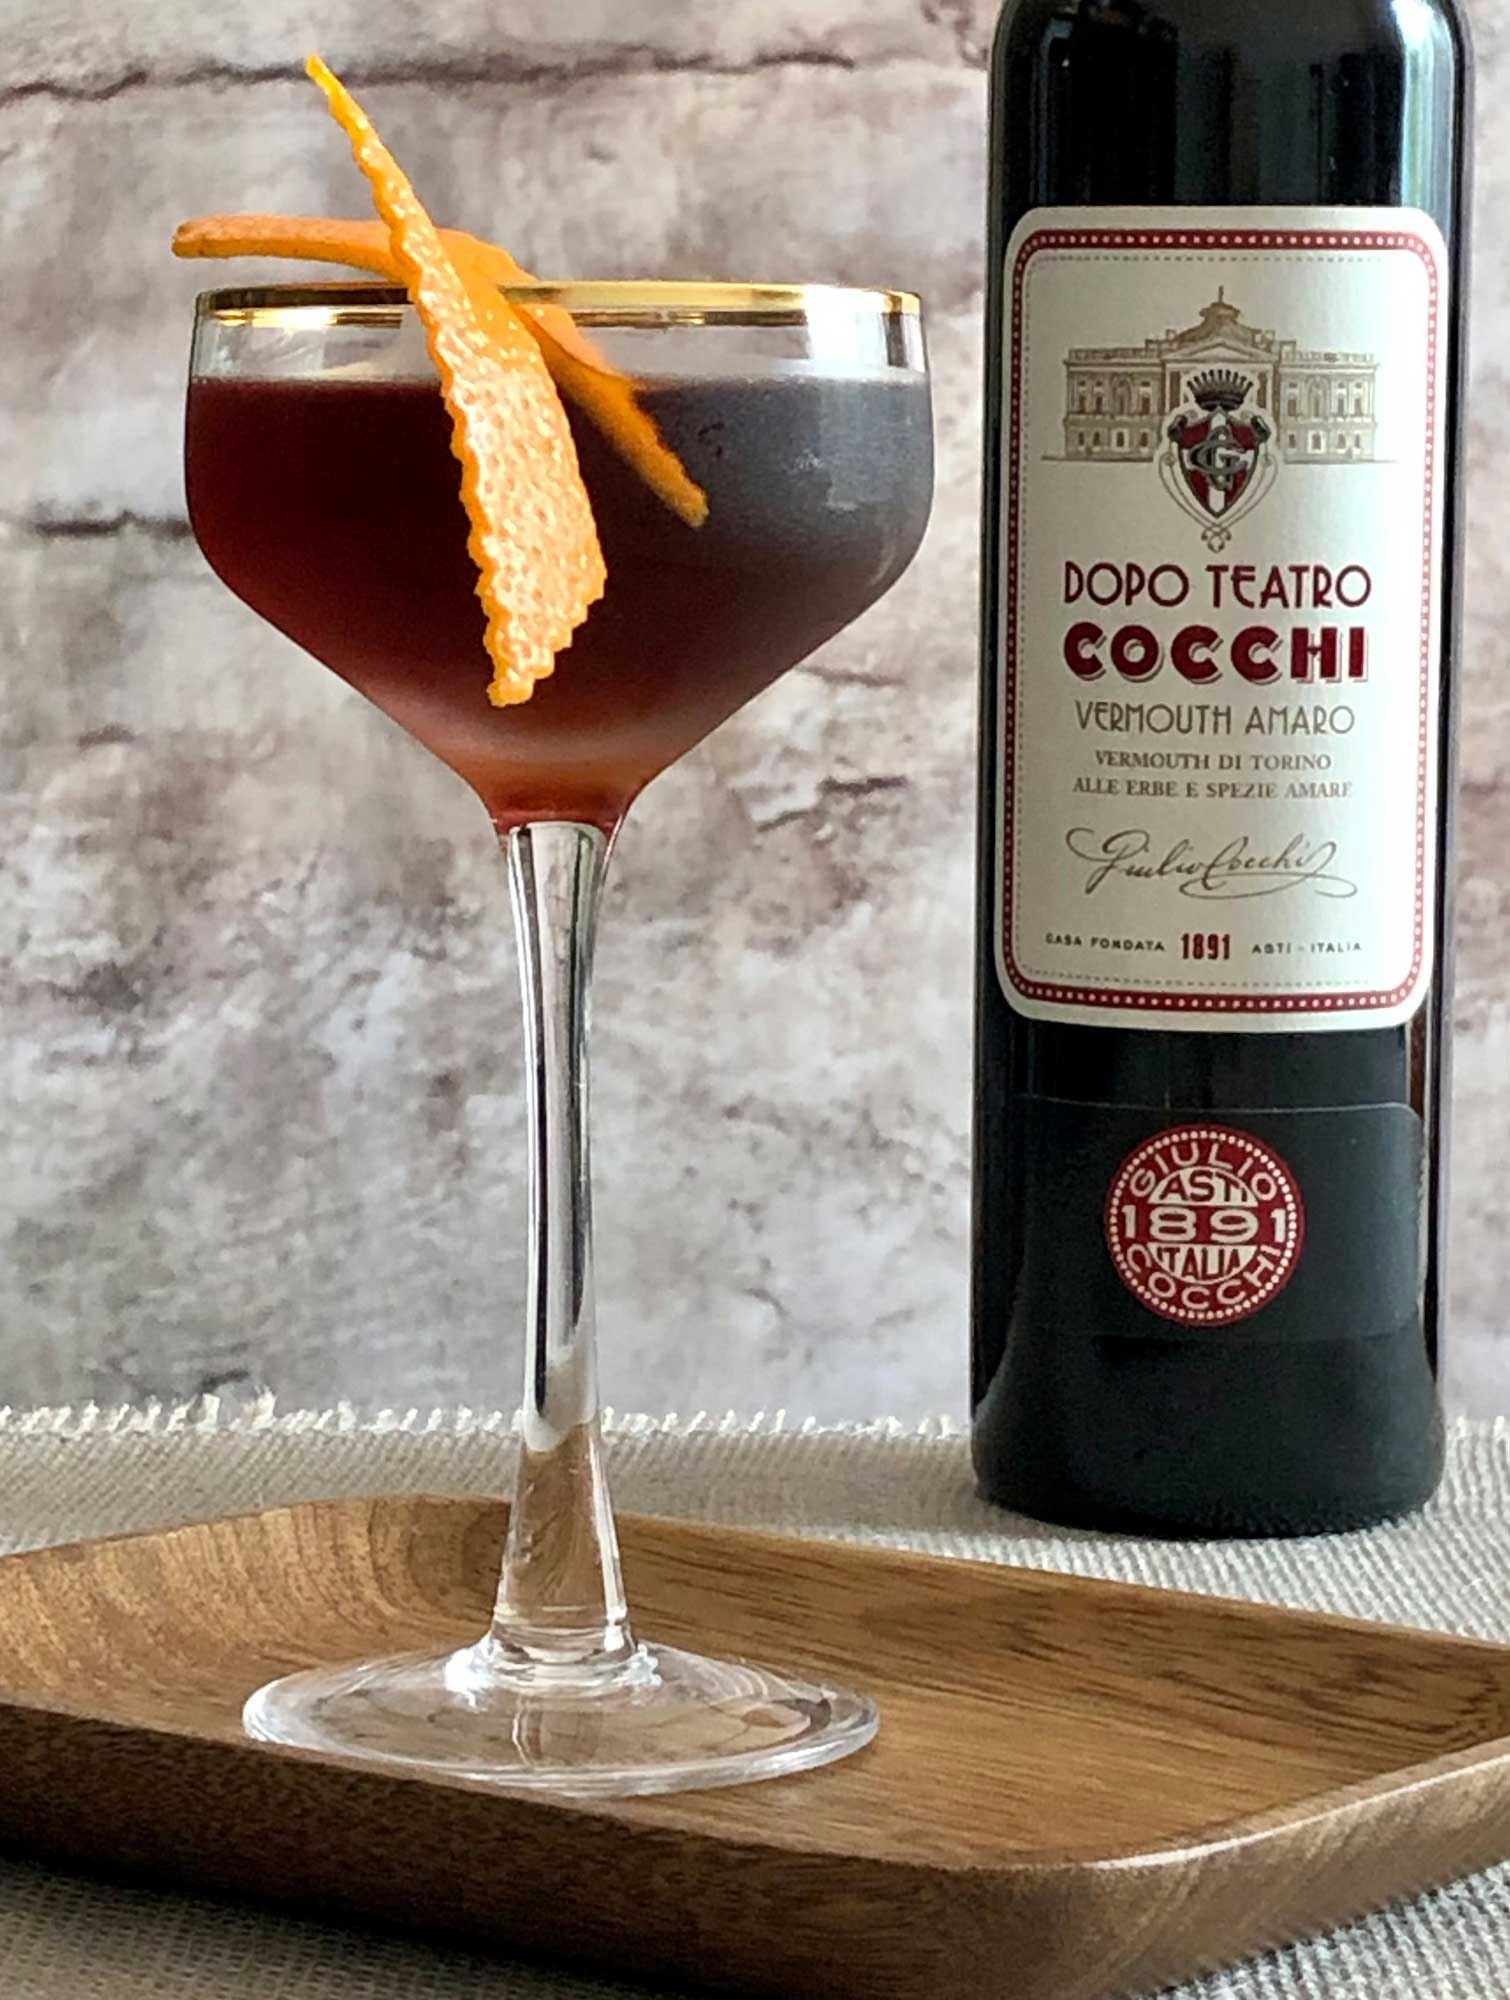 An example of the Maria Vittoria, the mixed drink (cocktail), by Sarah Goyne, Fort Smith, AR, featuring brown rum, Cocchi Dopo Teatro Vermouth Amaro, and Nux Alpina Walnut Liqueur; photo by Lee Edwards